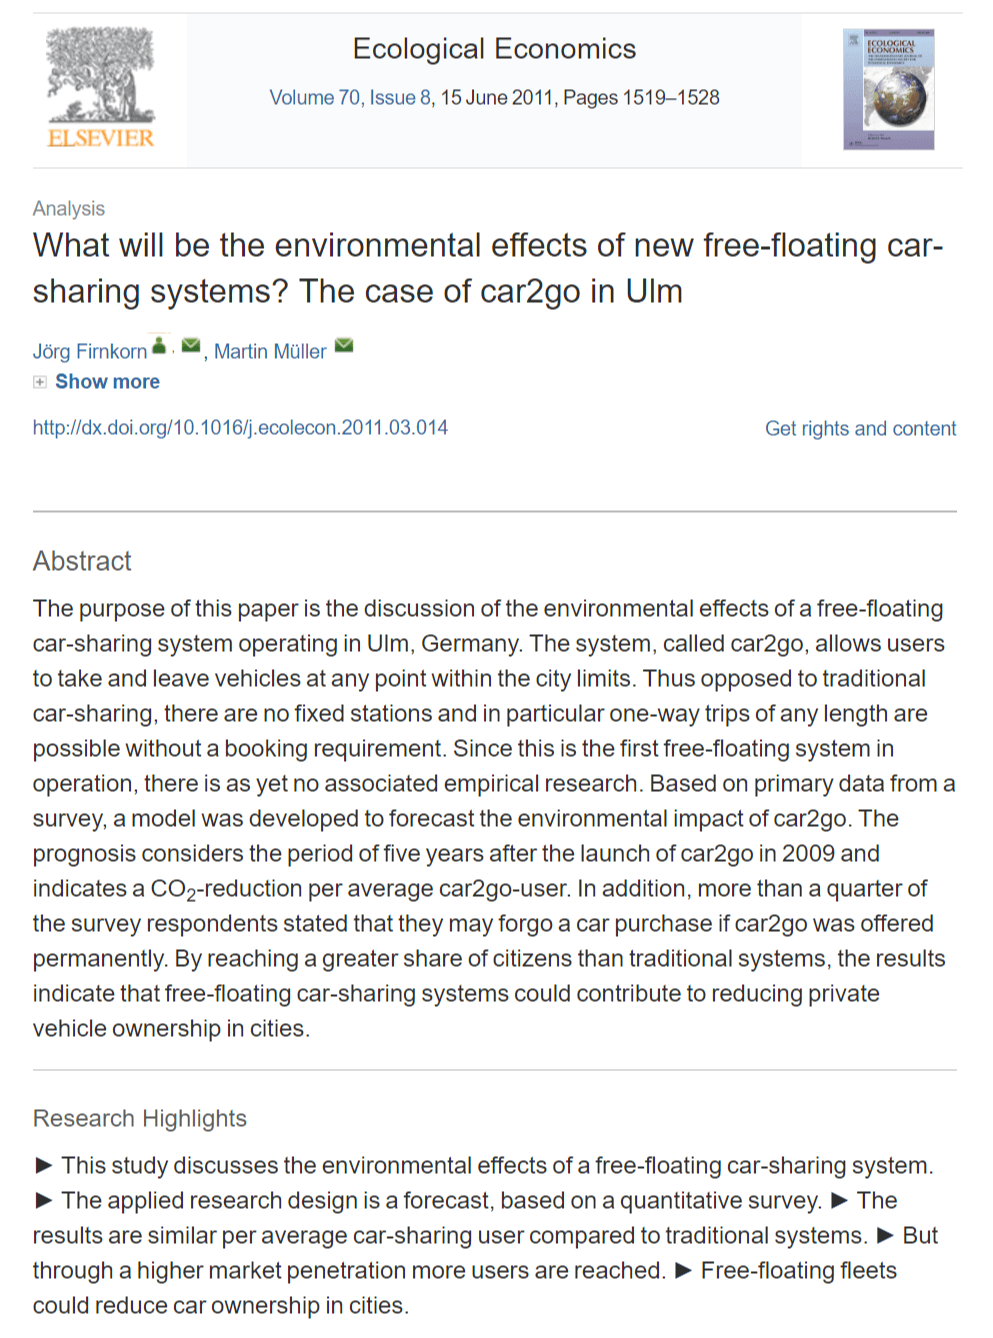 What Will Be the Environmental Effects of New Free-floating Car-sharing Systems? The Case of Car2go in Ulm